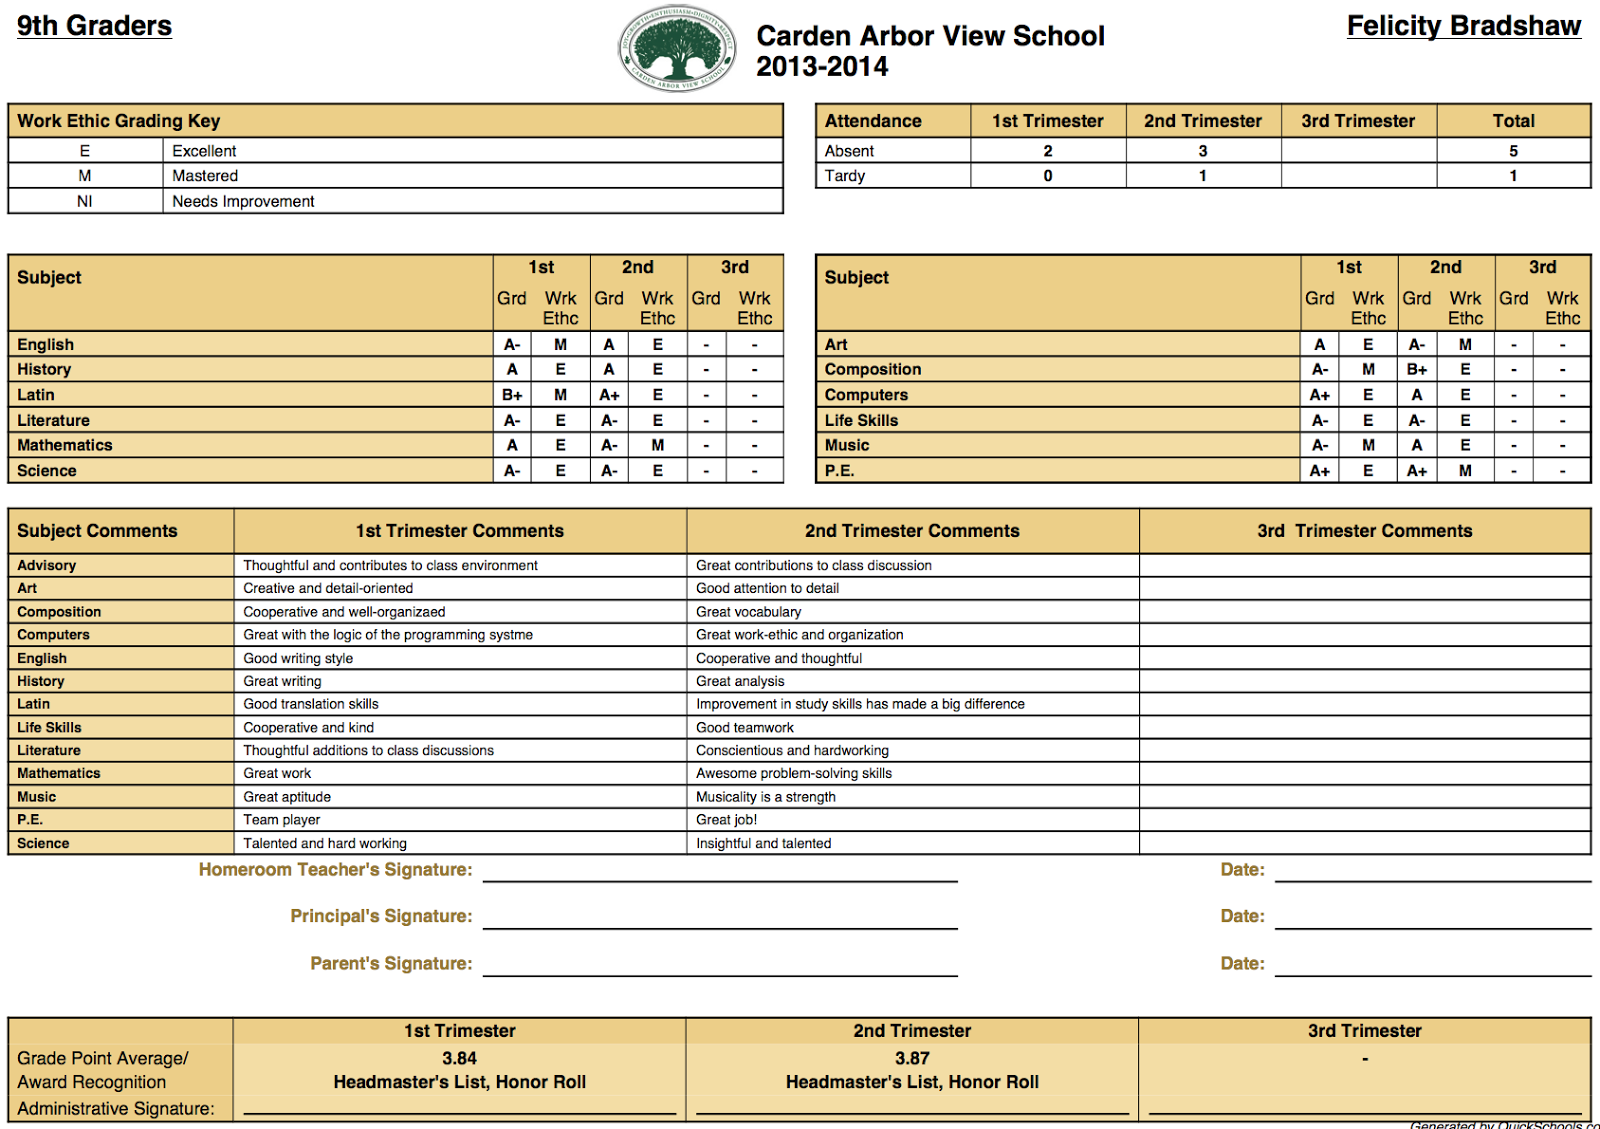 School Management System - Report card templates for K-12 schools ...